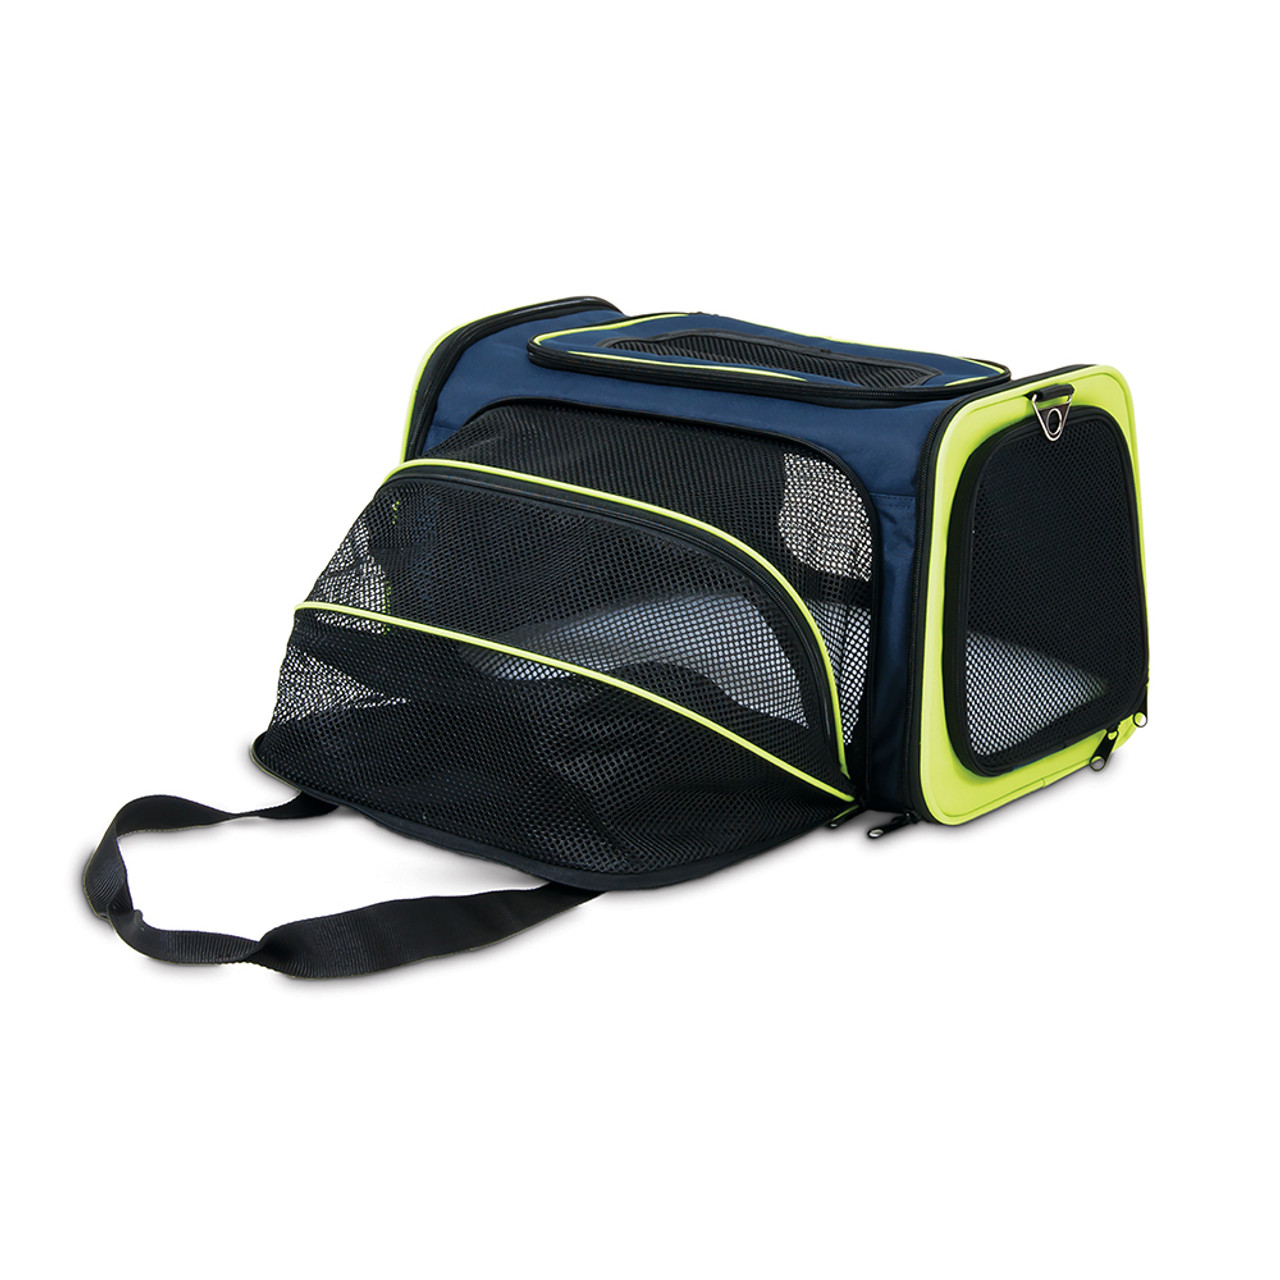 Petmate See & Extend Pet Carrier